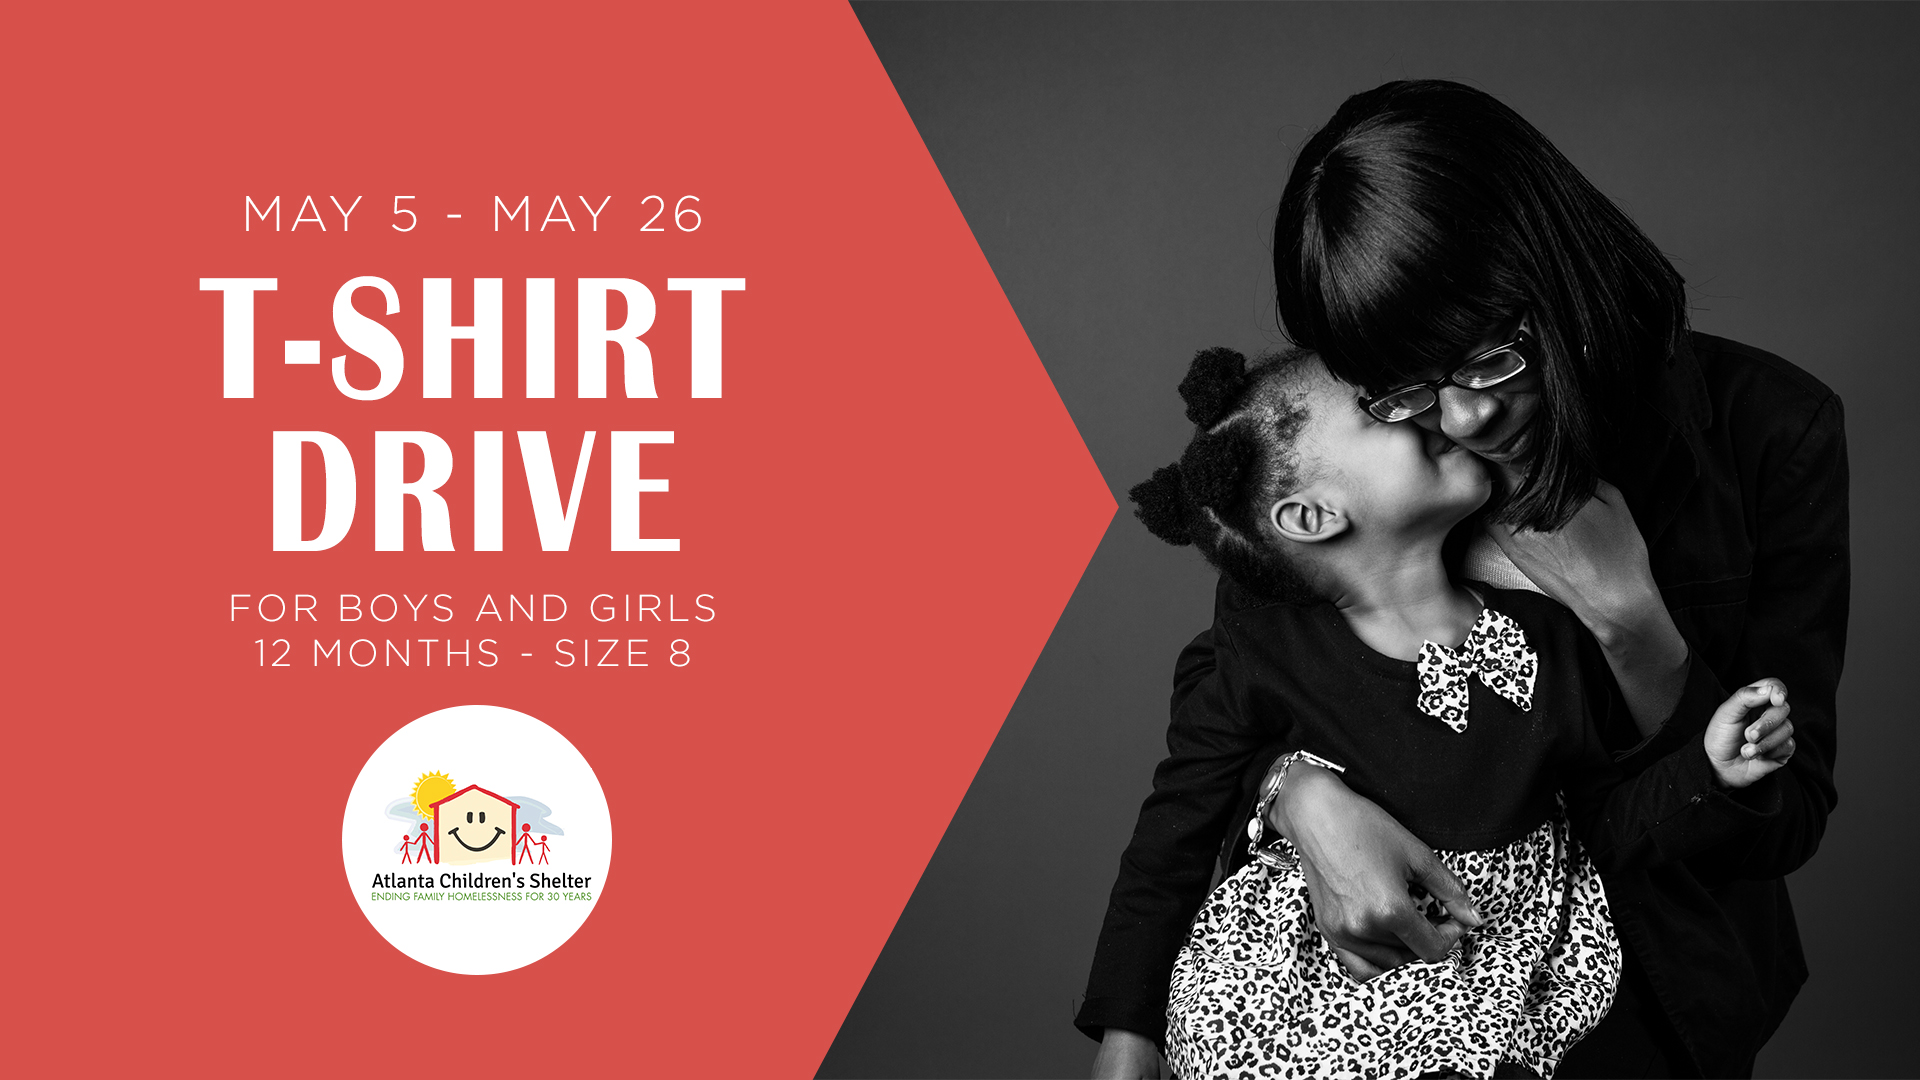 May Giving Project: T-Shirt Drive -  Join us as we partner with The Atlanta Children's Shelter (ACS) to collect new t-shirts from May 5-May 26 to help provide for the basic needs of children at the shelter. We will be collecting new colorful t-shirts for boys and girls that have age appropriate graphics in the following sizes: 12 months, 2T-5T, and child sizes 6-8. Items can be dropped off in the bins located in the Reception Landing or the Children's Ministry Welcome Area.